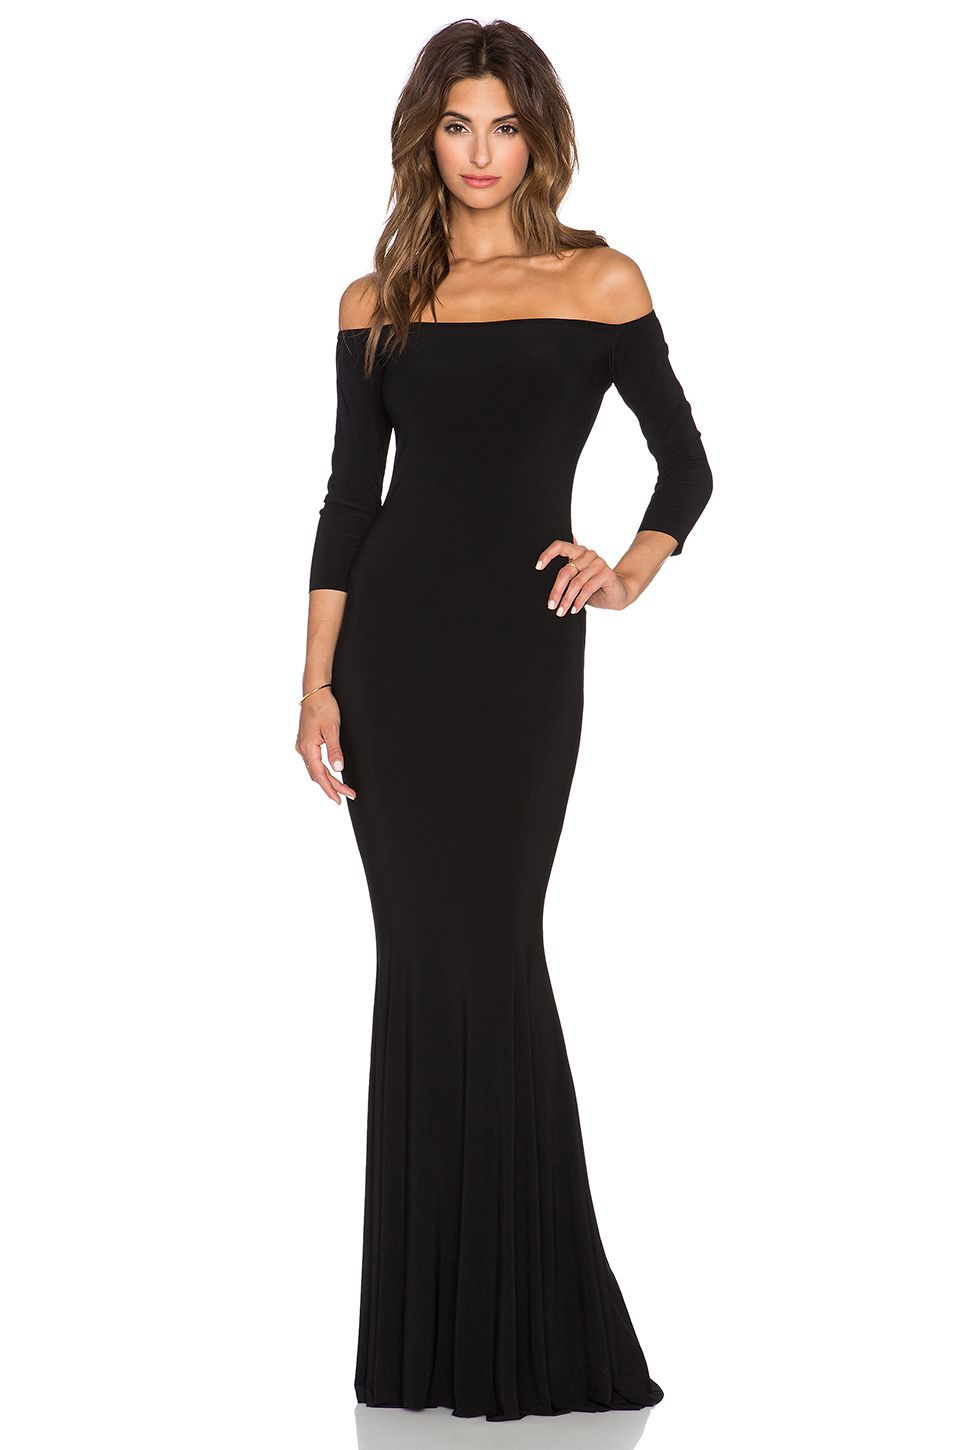 Norma kamali norma kulture off the shoulder fishtail gown in black gala dresses ombrellifo Choice Image